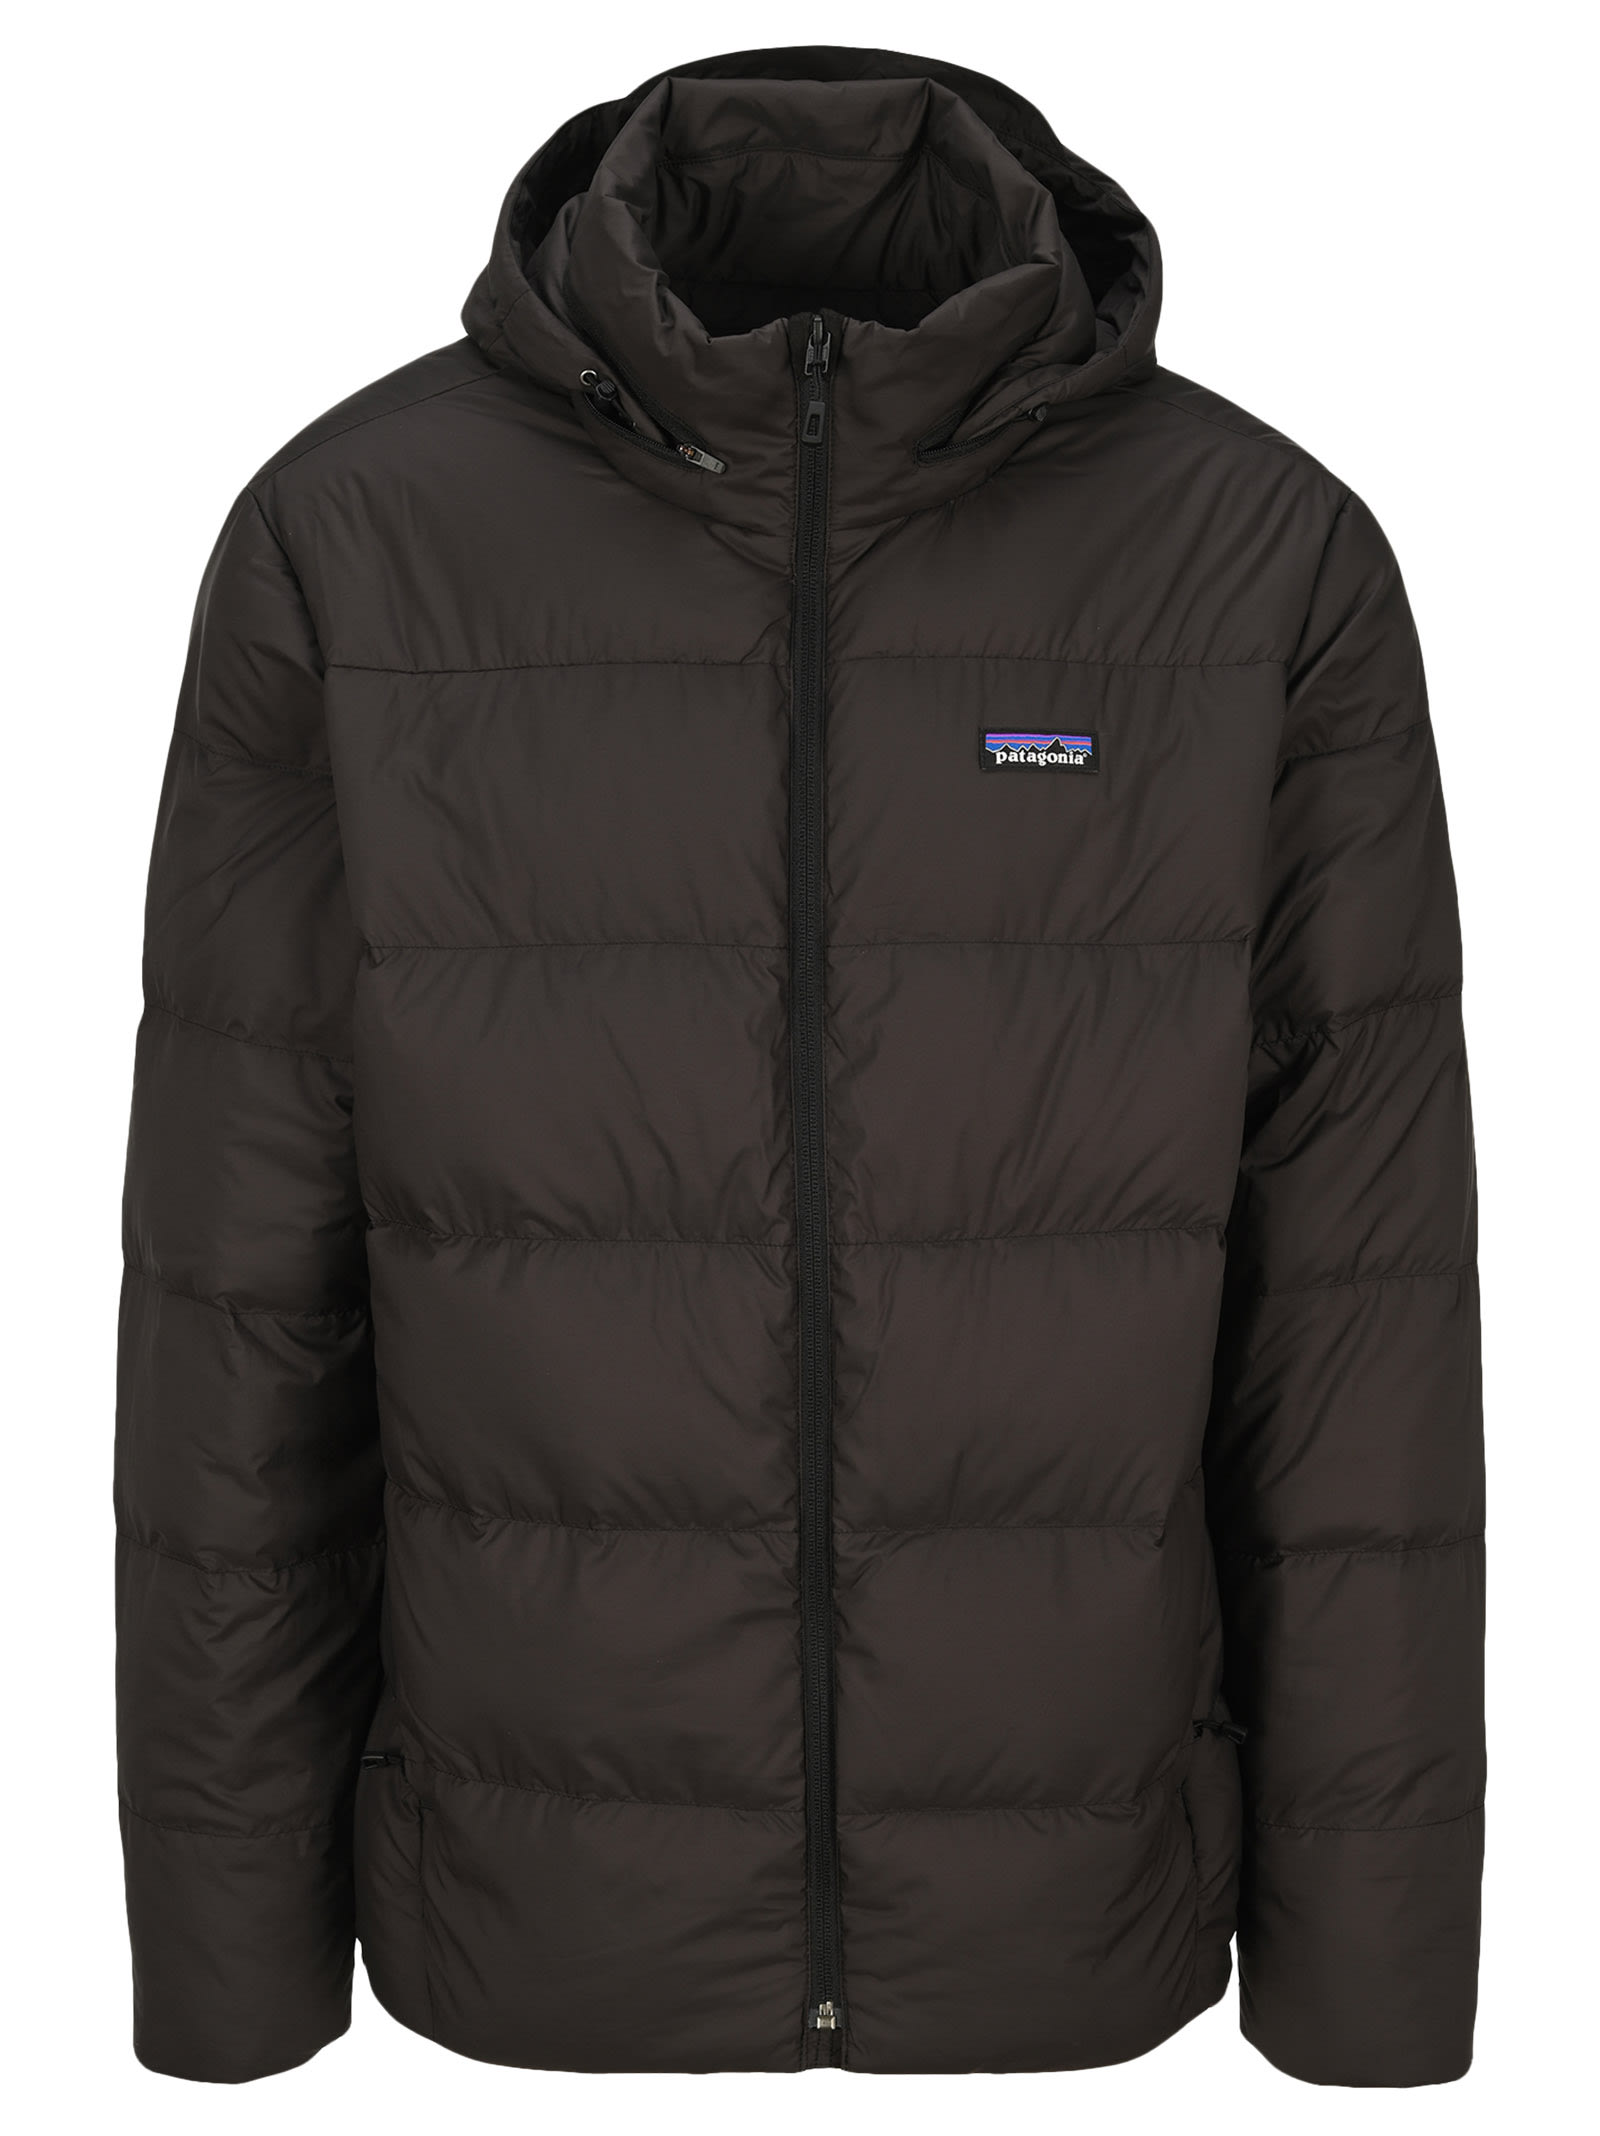 Black Silent Down Jacket By Patagonia. Featuring: - High Standing Collar; - Front Zip Fastening; - Logo Patch At The Chest; - Long Sleeves; - Straight Hem. Composition: 70% RECYCLED POLYESTER, 30% POLYESTER